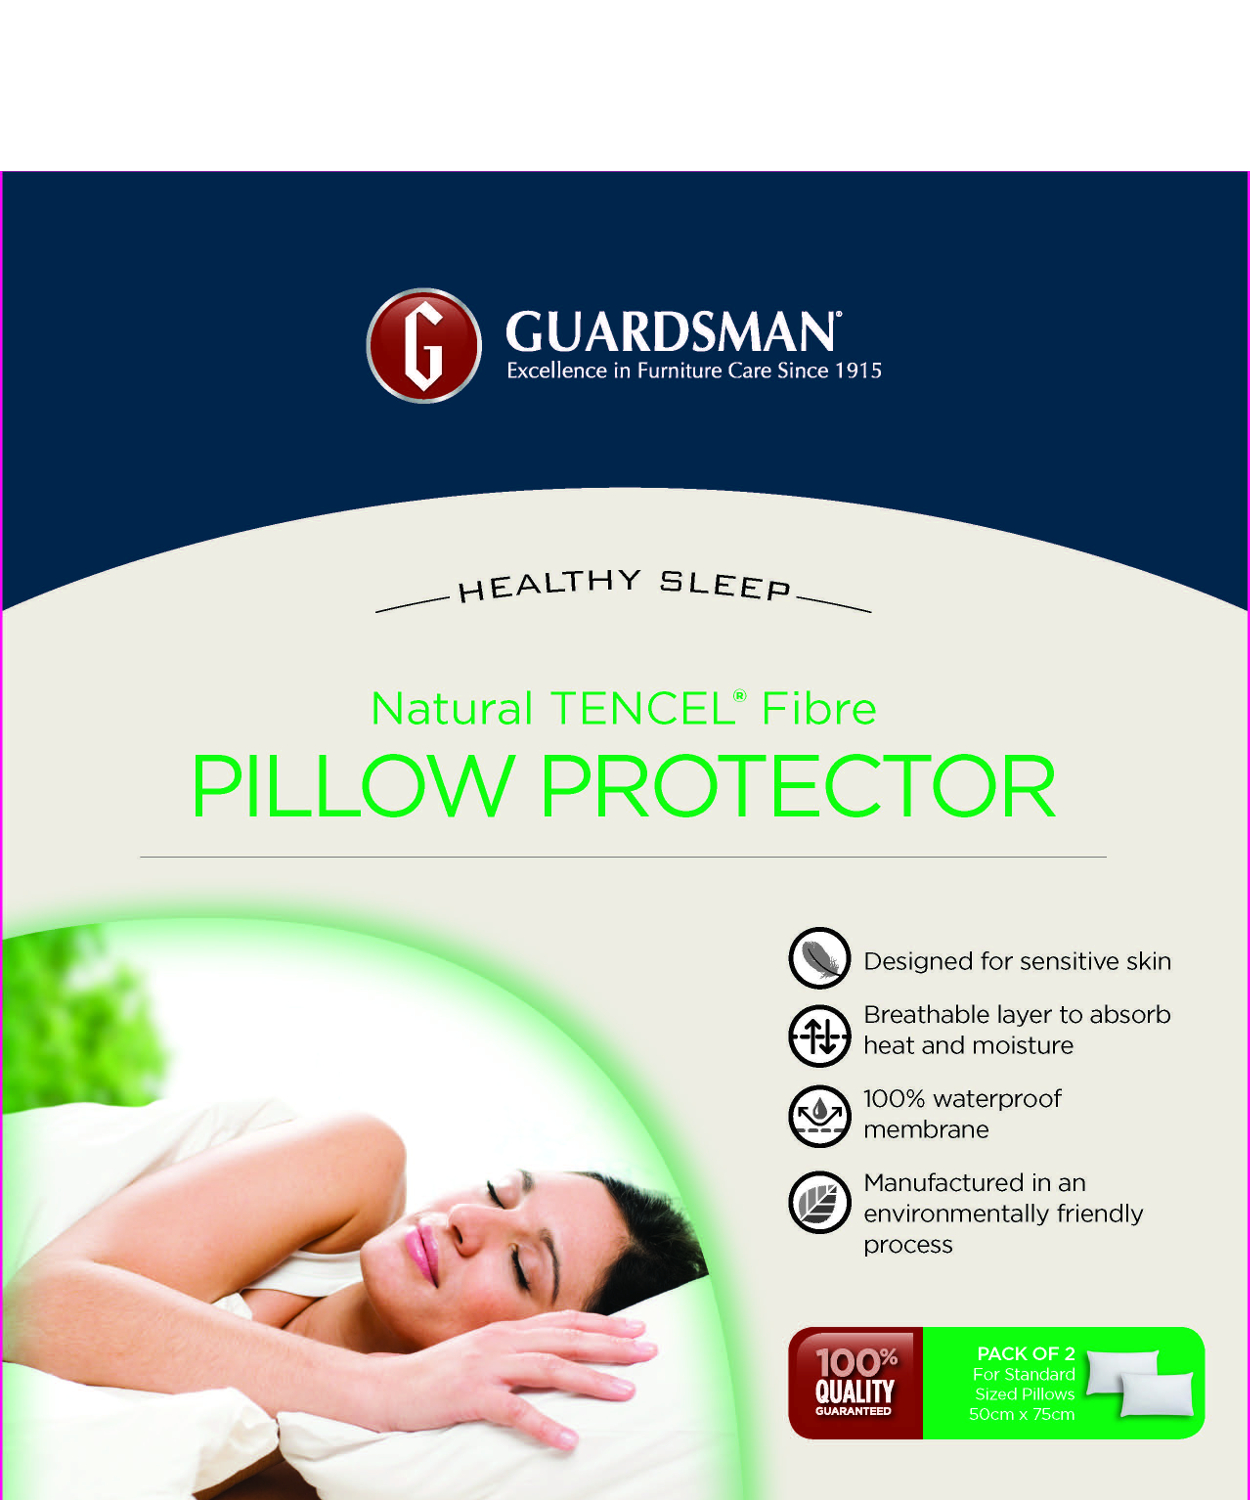 Swish Mobility Guardsman Furniture Protection Plan Price Guardsman Furniture Protection Plan Claim Guardsman Pillow Protectors Rise Furniture houzz-03 Guardsman Furniture Protection